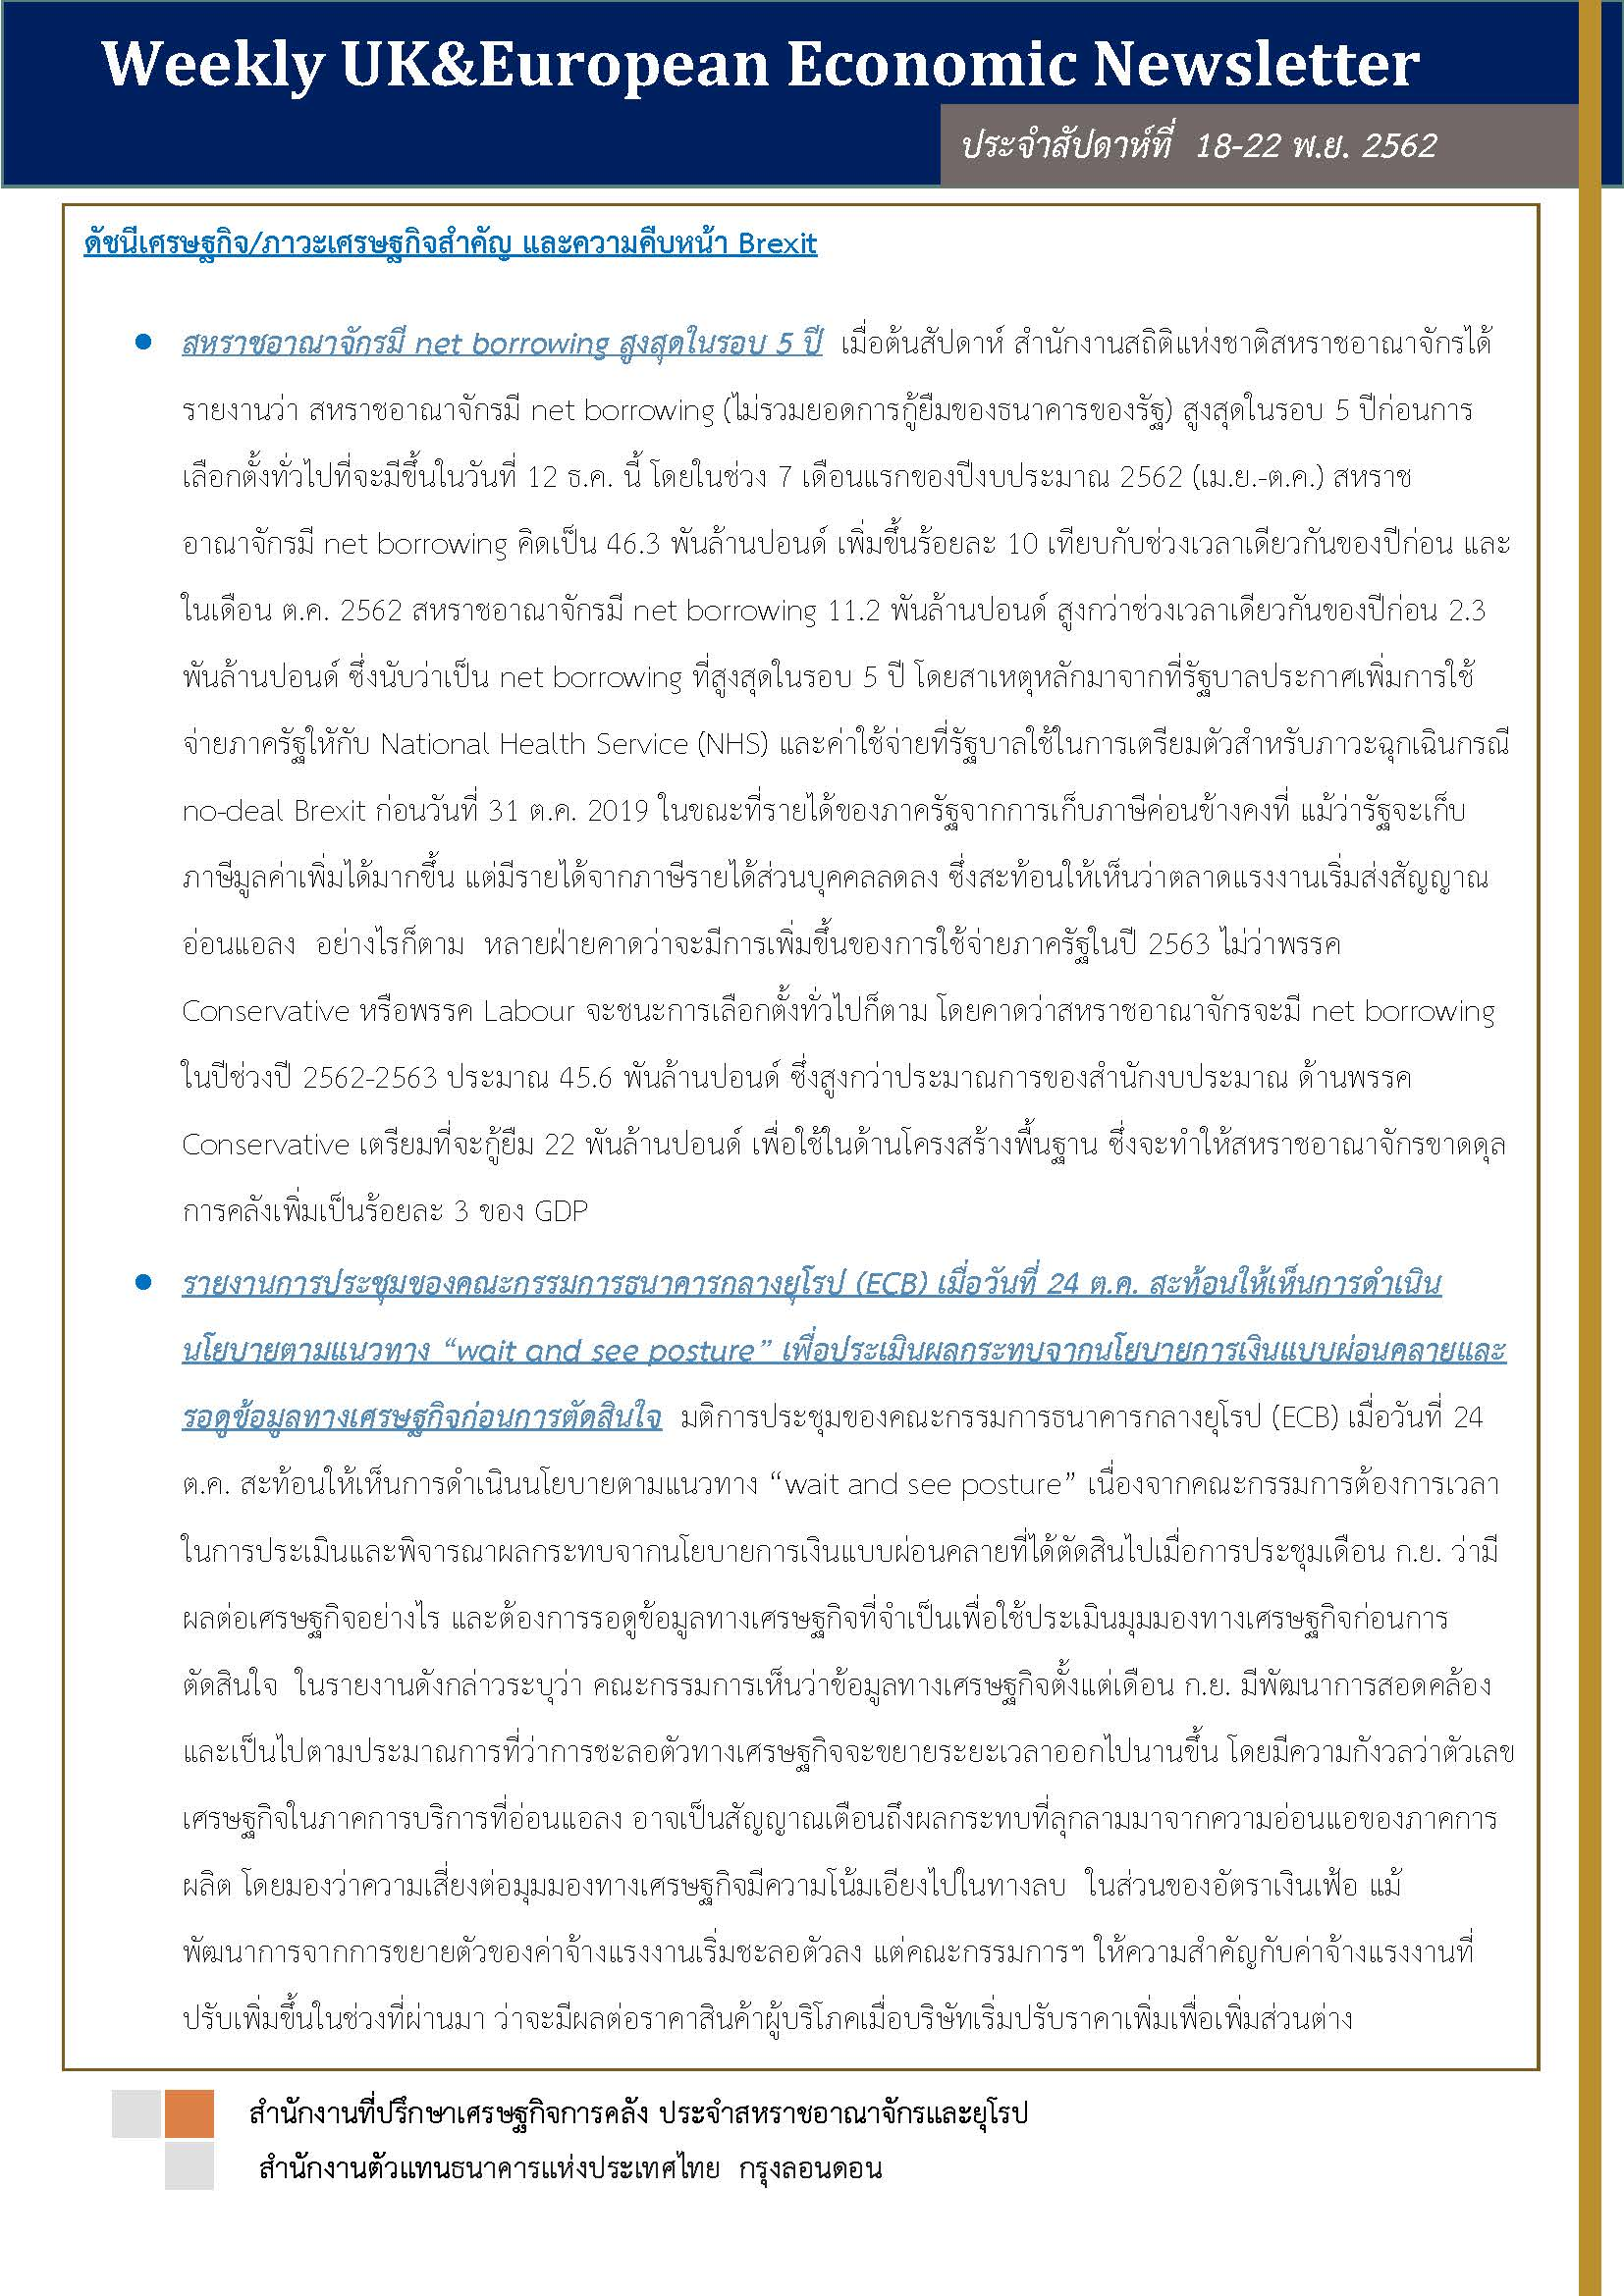 Weekly-UK-European-Economic-News-Summary-(18-22-พย-62)_Page_1.jpg